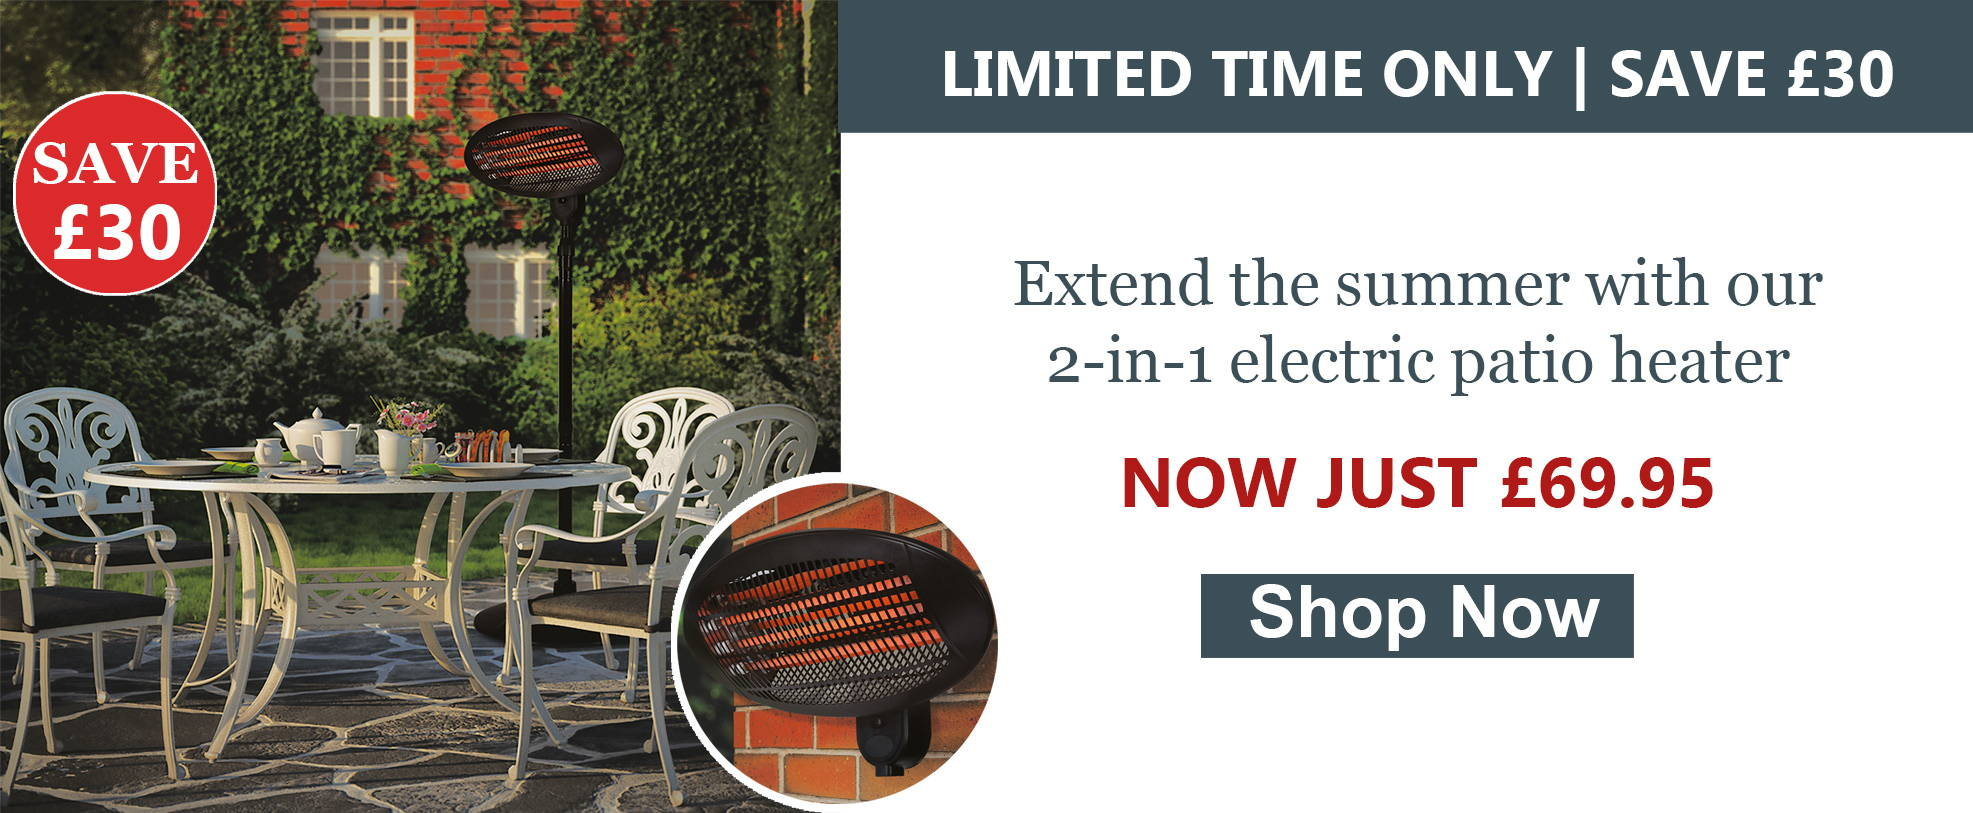 Save £30 on an electric patio heater